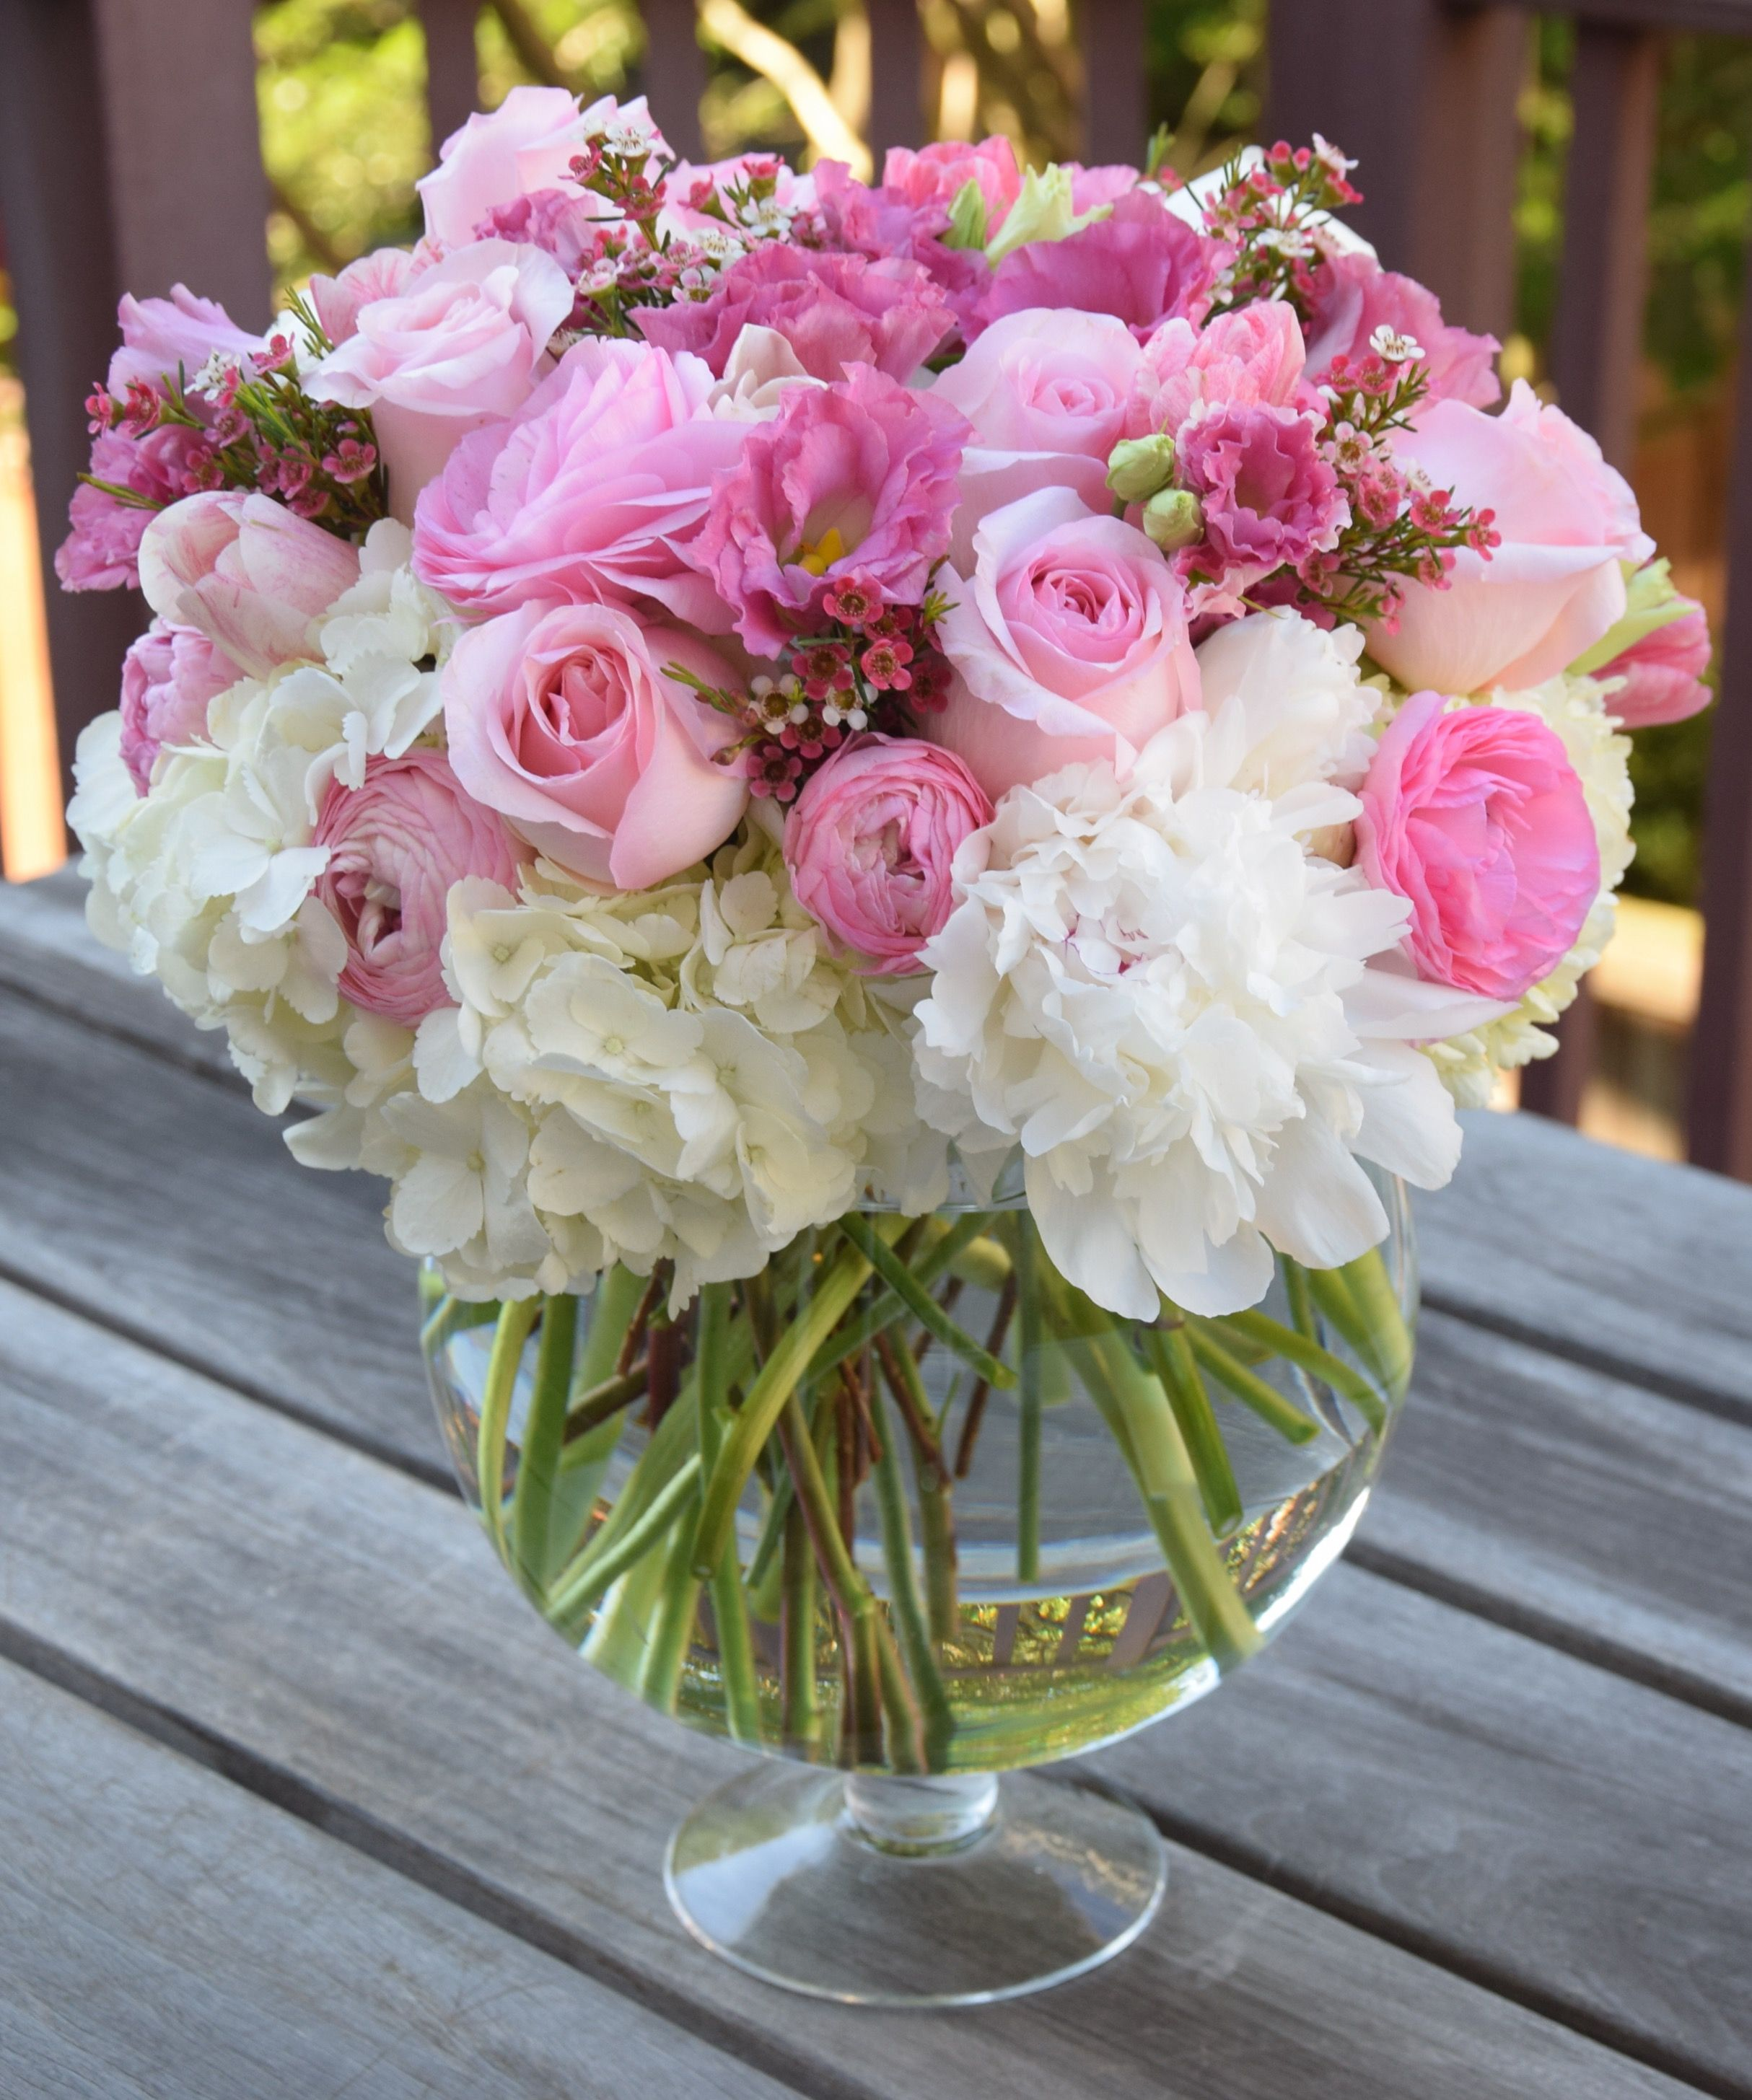 Pink Hydrangea Mix With Roses Bouquet In 2020 Birthday Flowers Arrangements Birthday Flowers Bouquet Flowers Bouquet Gift